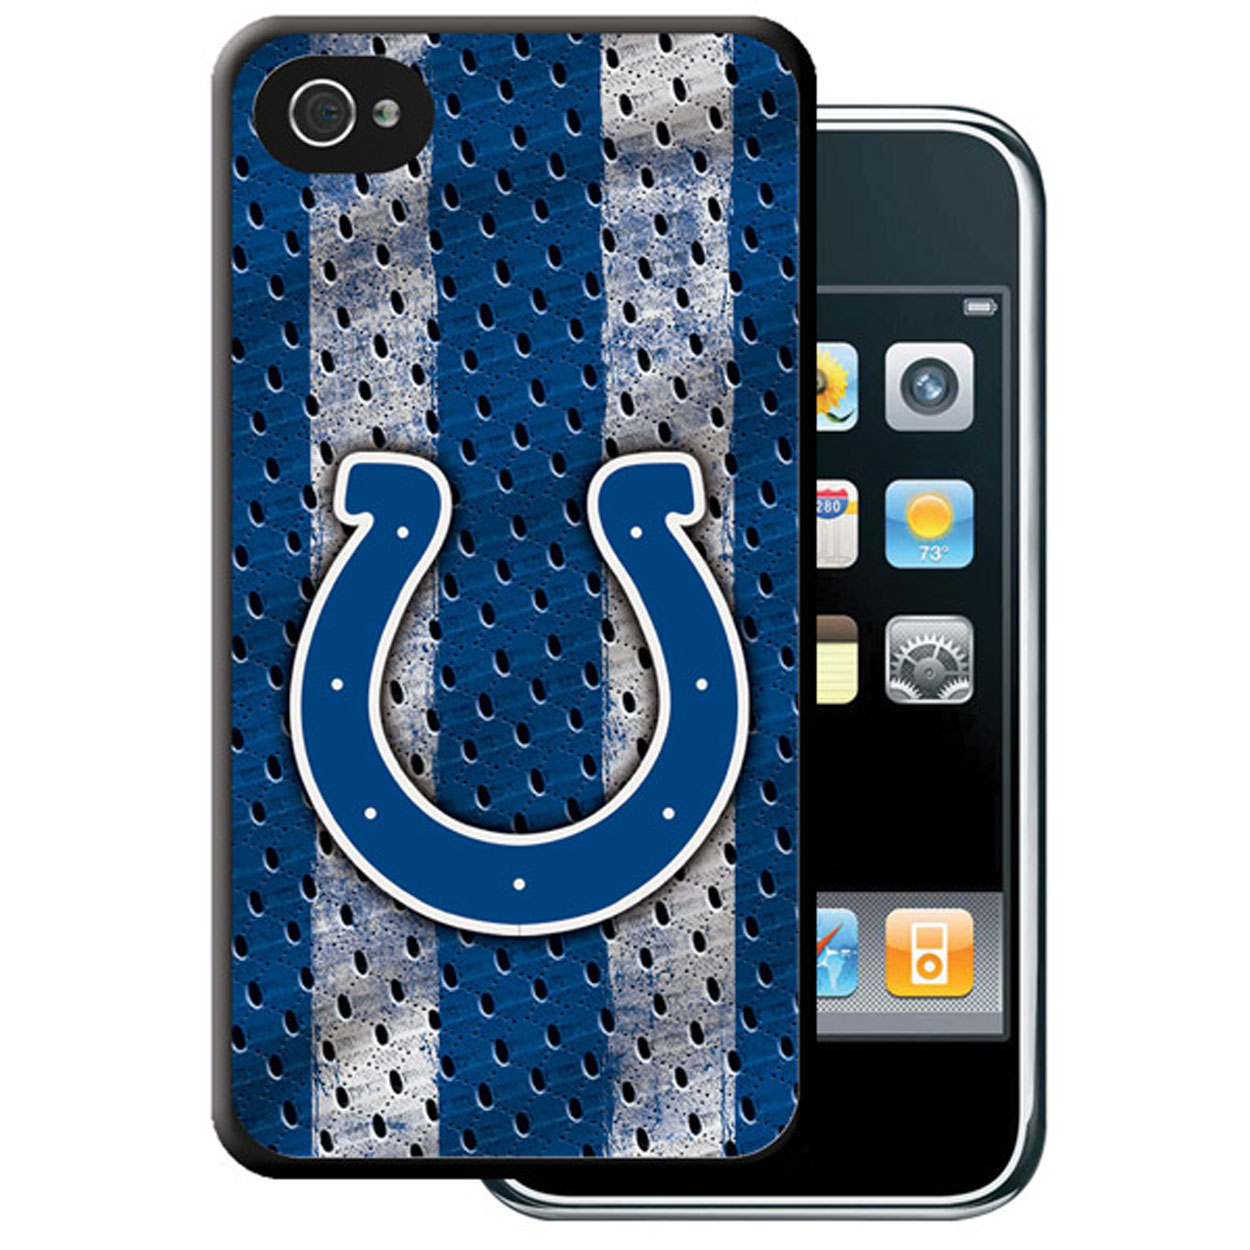 Iphone 4/4S Hard Cover Case - Indianapolis Colts